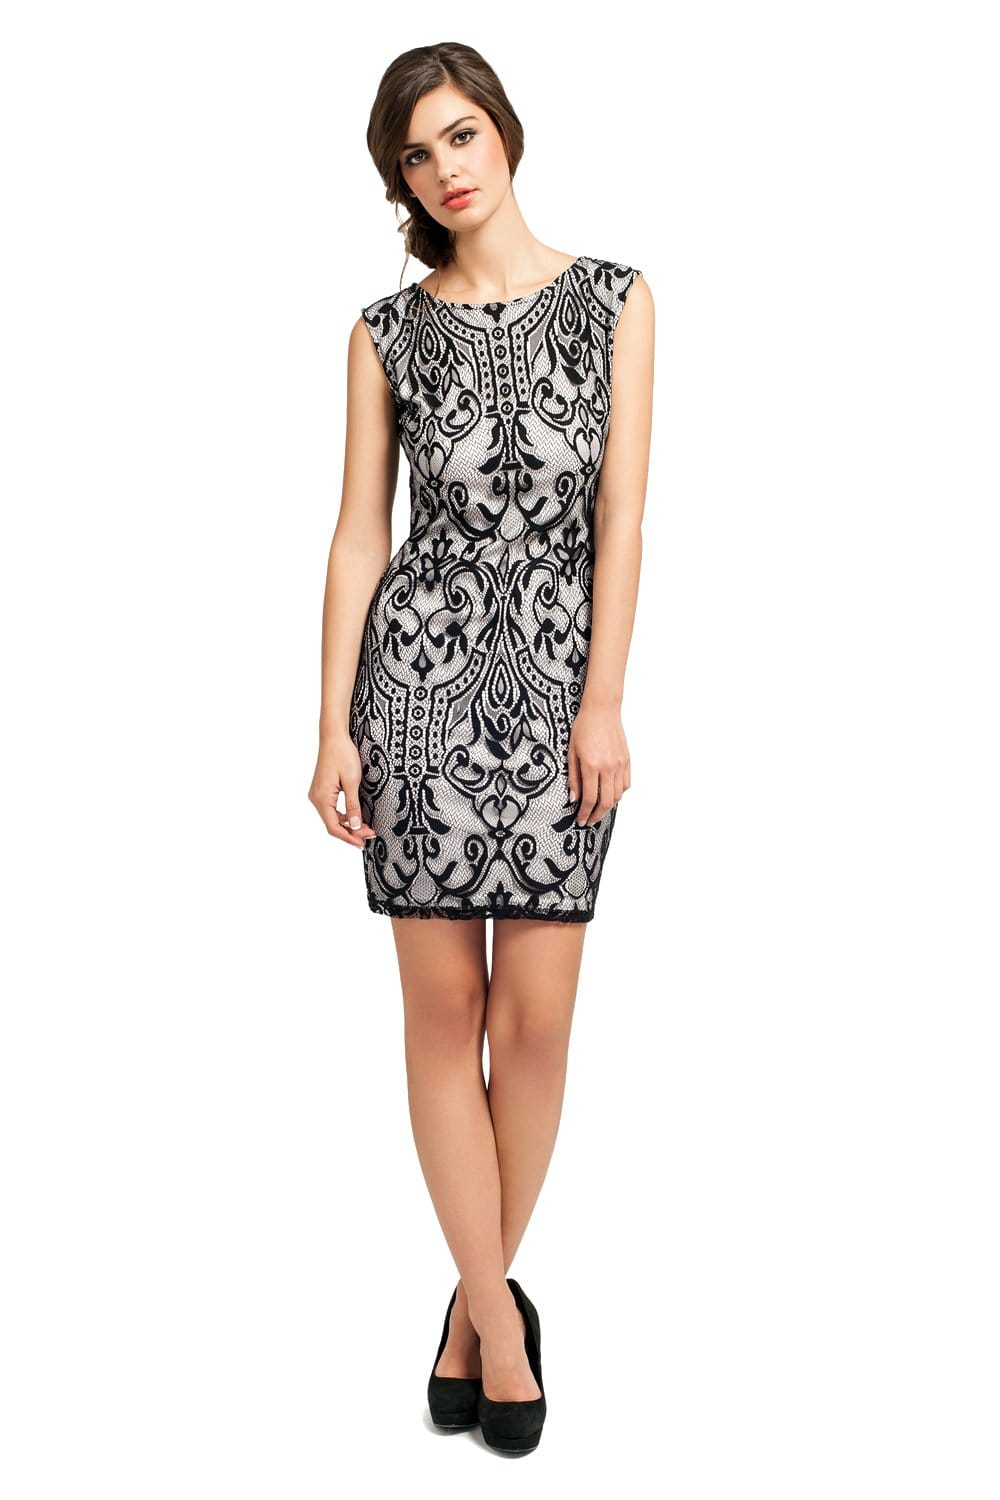 Black and white bodycon dress at home